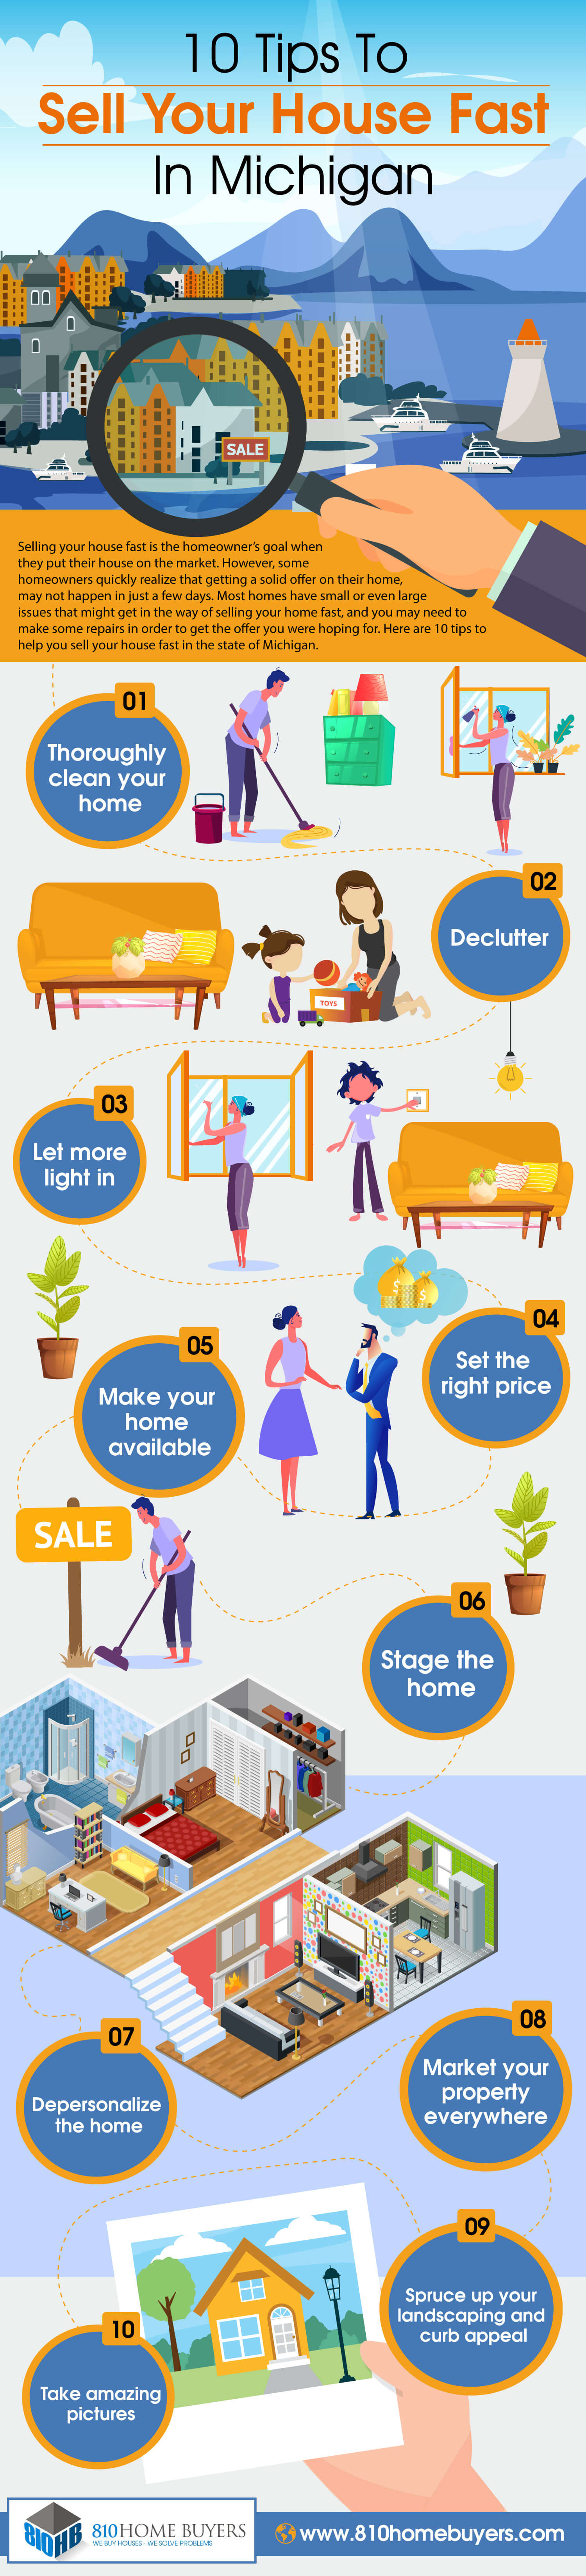 10-Tips-To-Sell-Your-House-Fast-In-Michigan-infographic-plaza